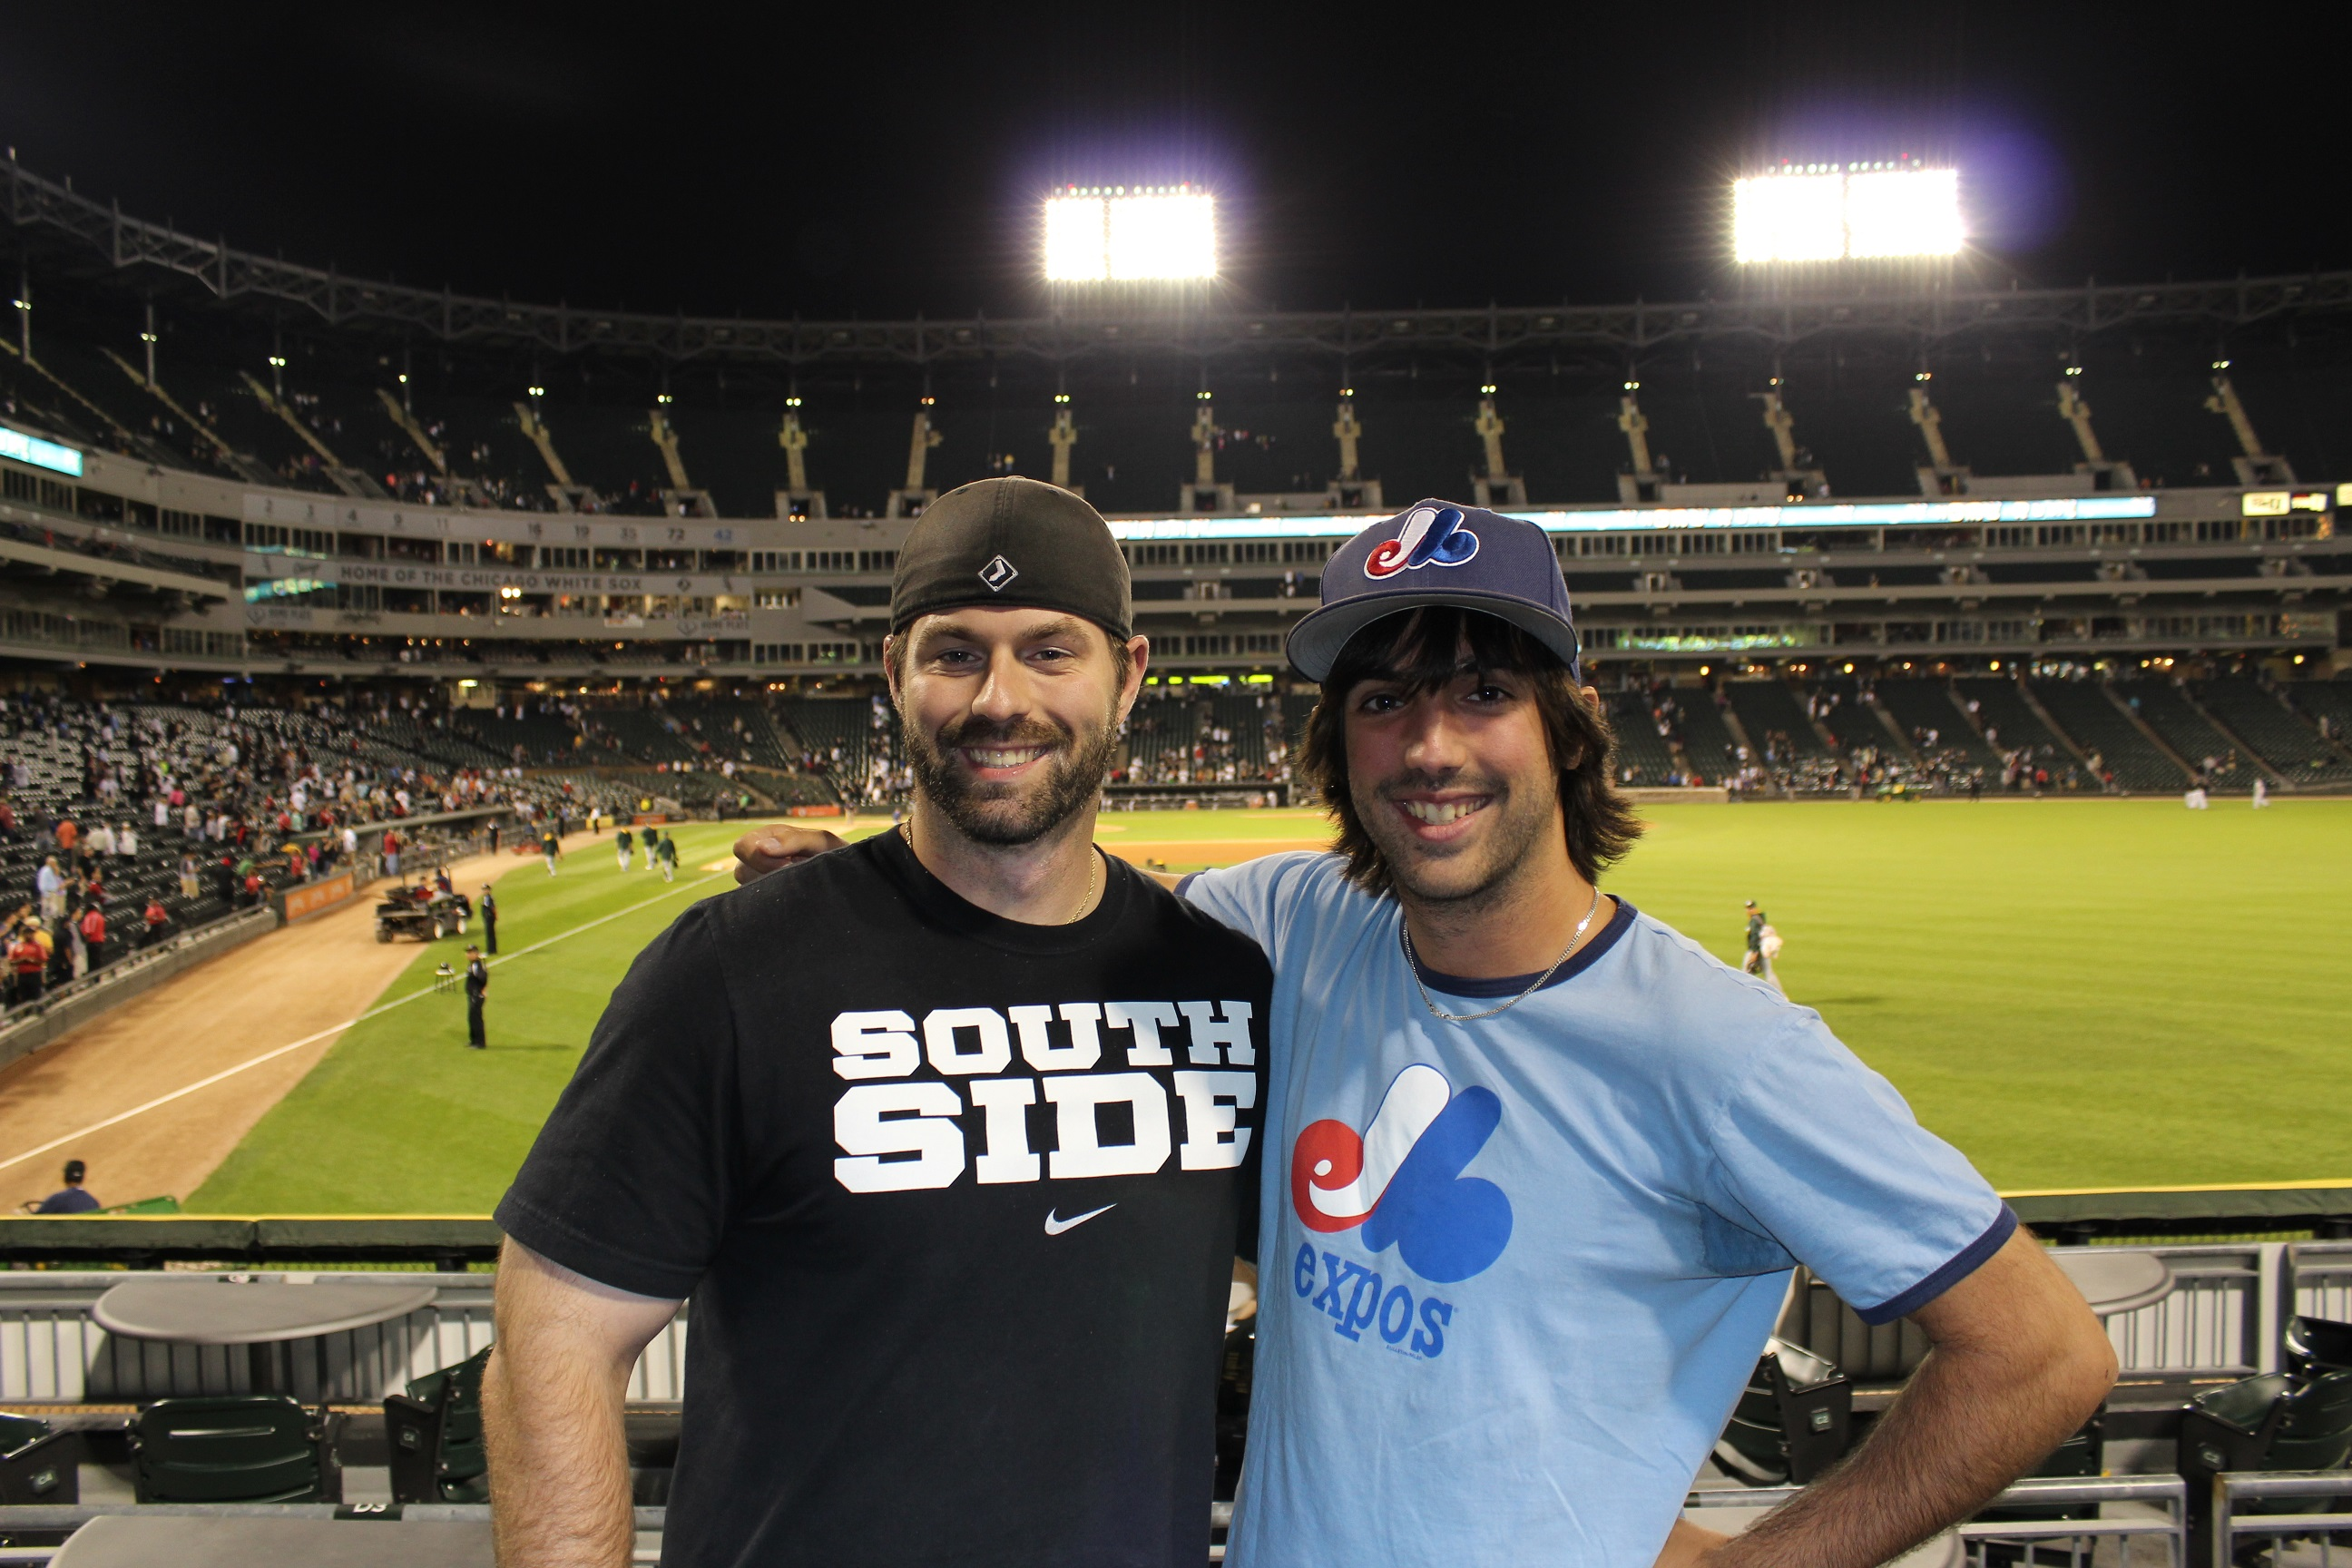 23rd Stop Us Cellular Field September 8th 2014 Montreal On